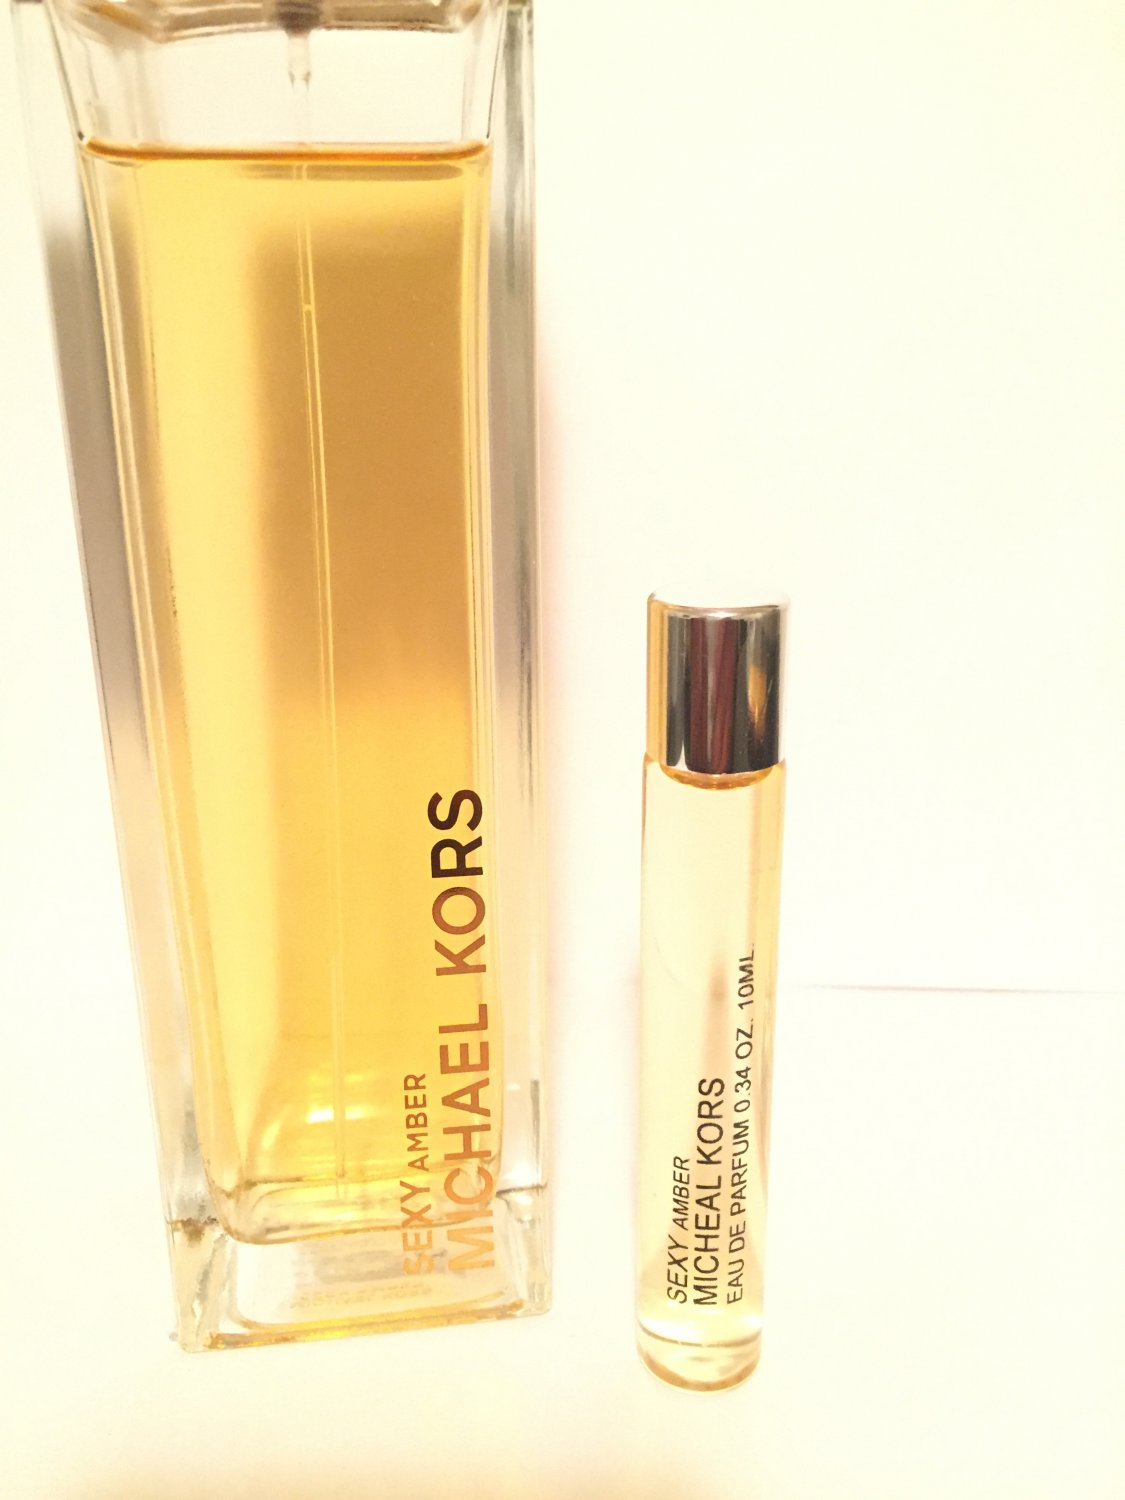 Sexy Amber Michael Kors WOmen EDP sample Perfume Rollerball Glass Travel Size New